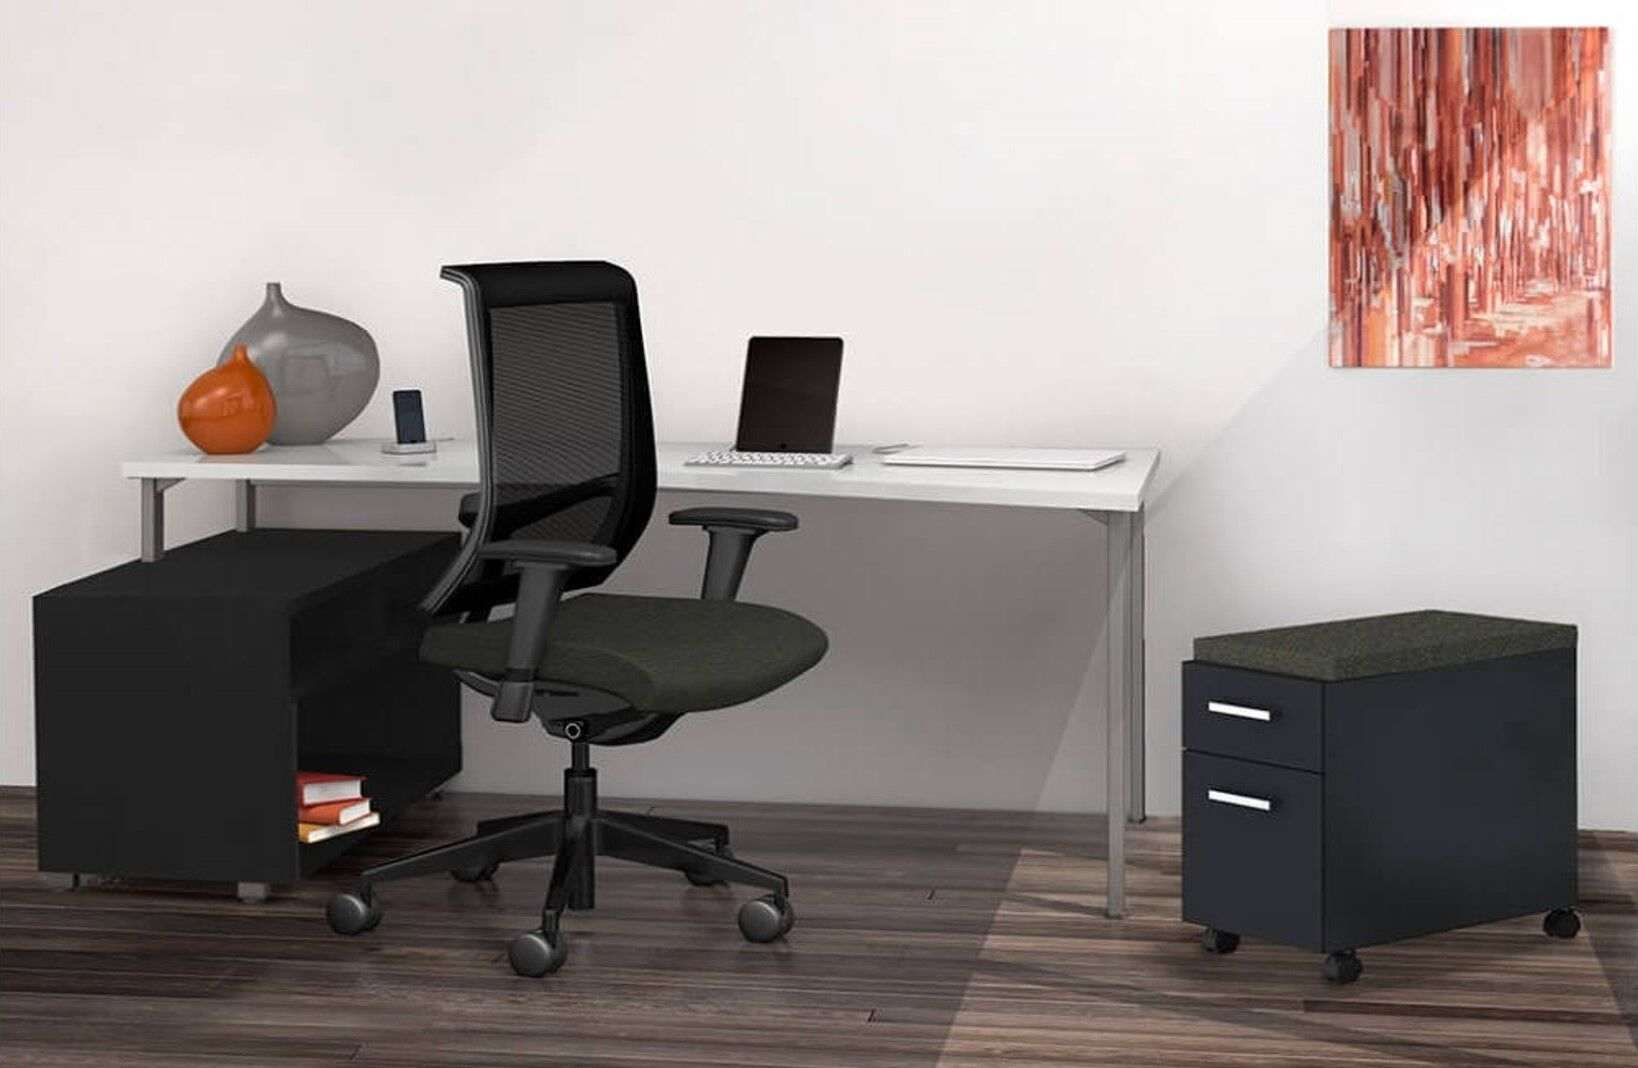 lshaped-desks-l-shaped-desk-with-filing-cabinet_preview.jpg